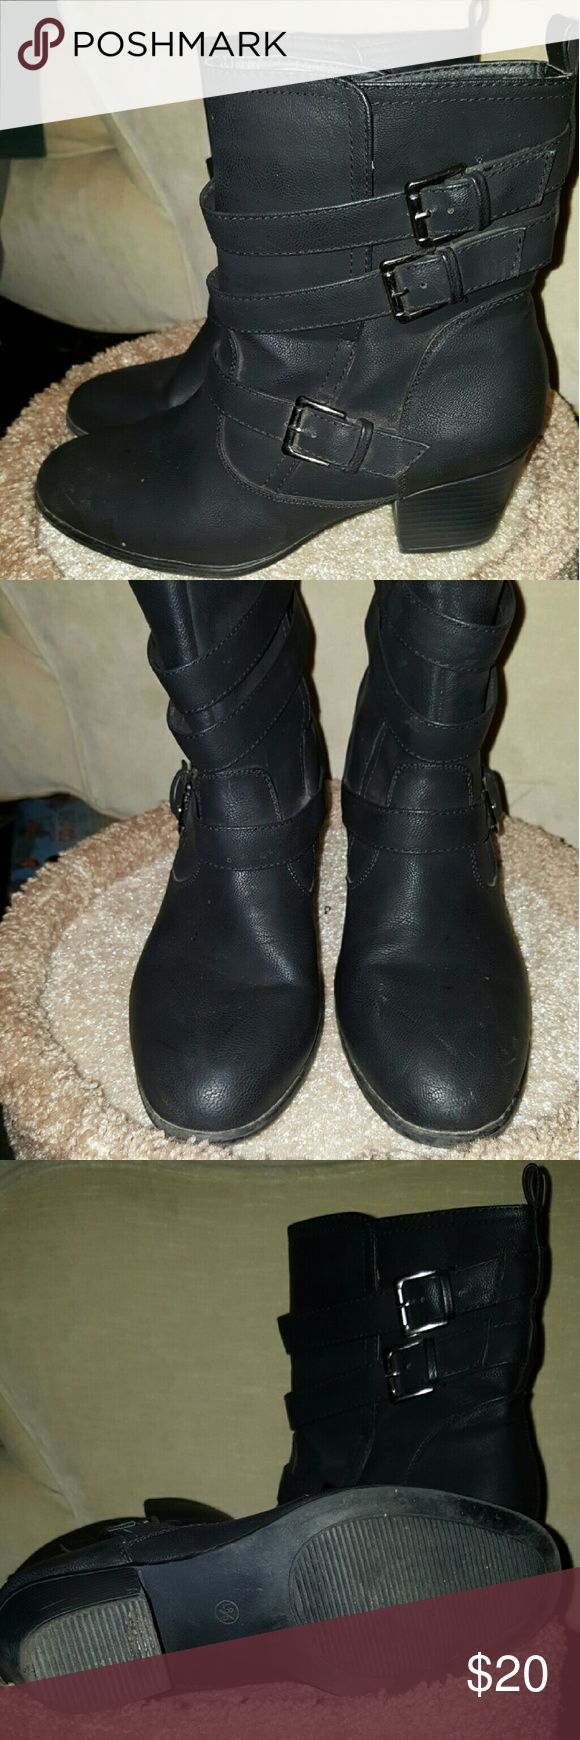 Rue 21 Boots L8/9 Rue 21 Boots size L8/9 only worn a few times. Rue 21 Shoes Ankle Boots & Booties